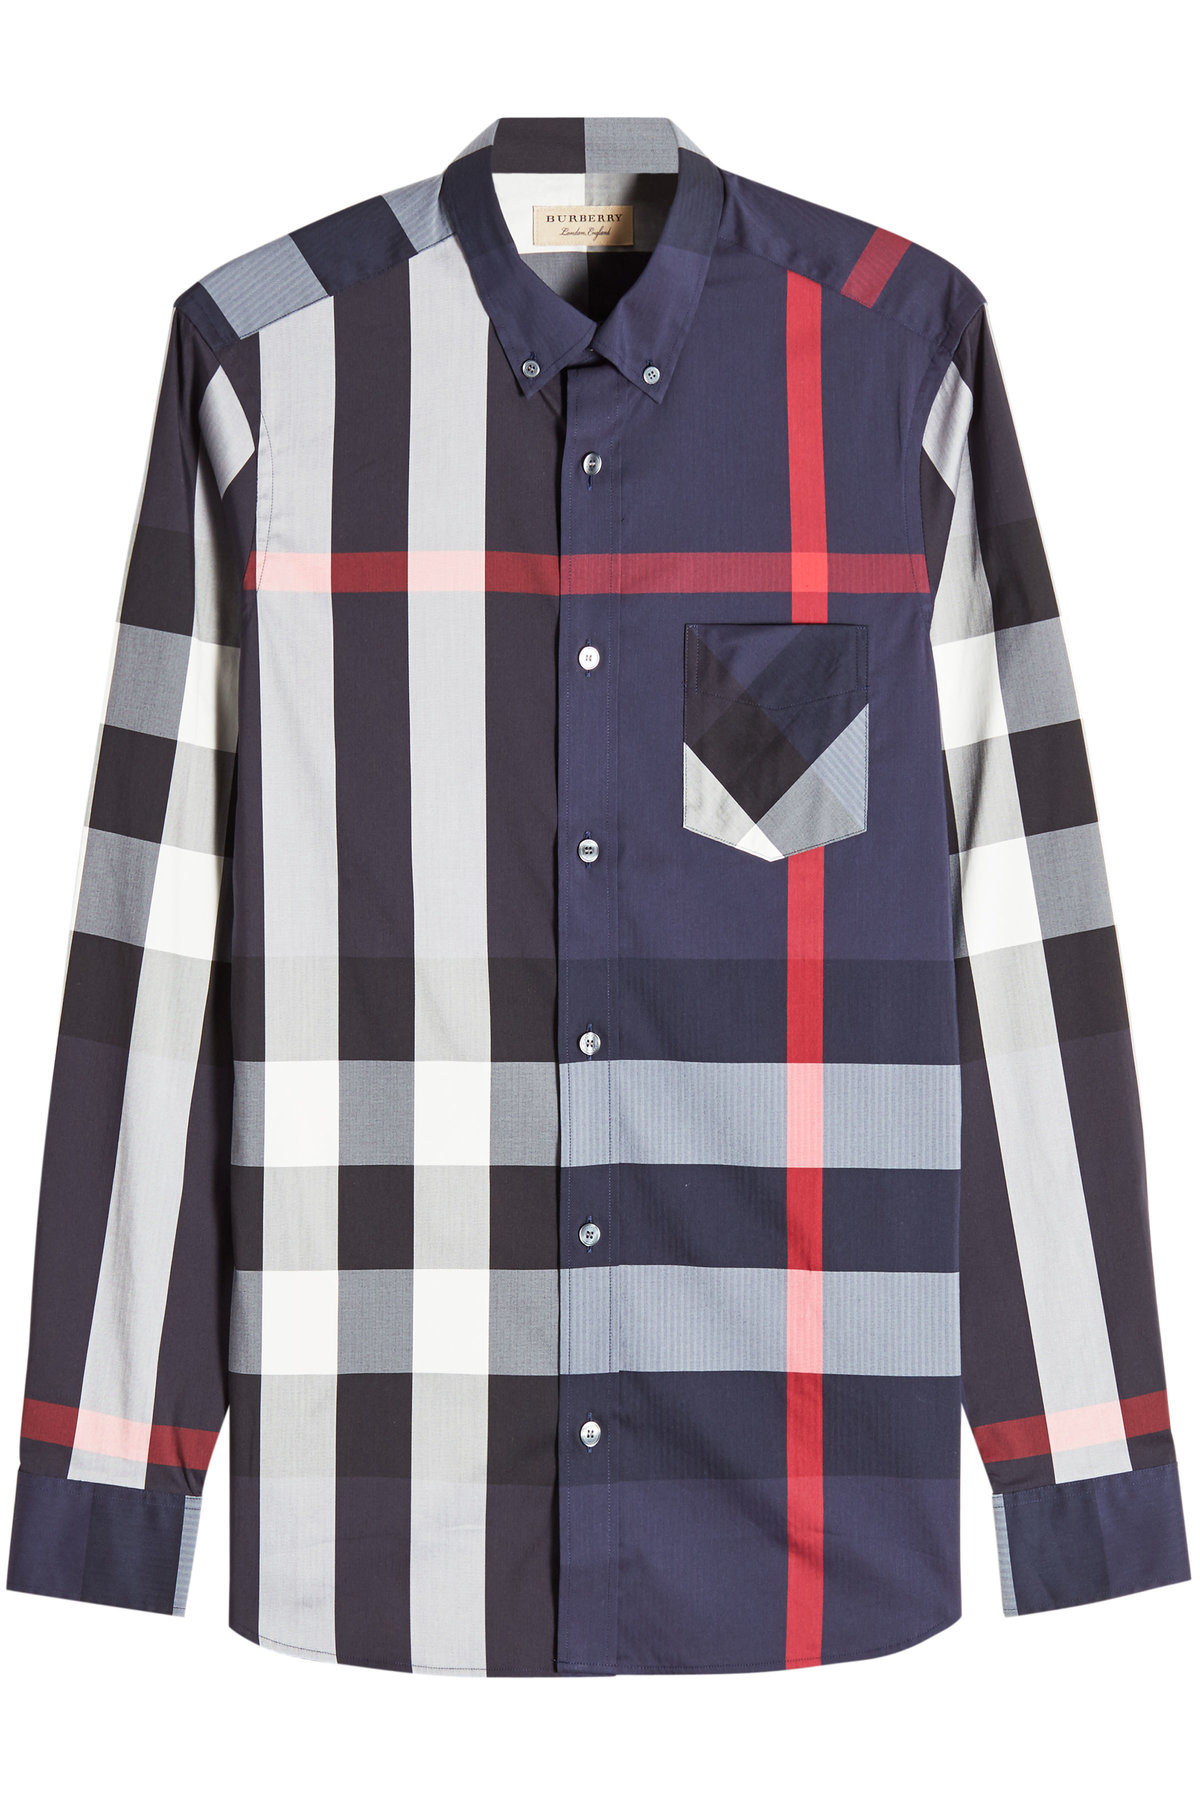 Thornaby Printed Shirt with Cotton | BURBERRY